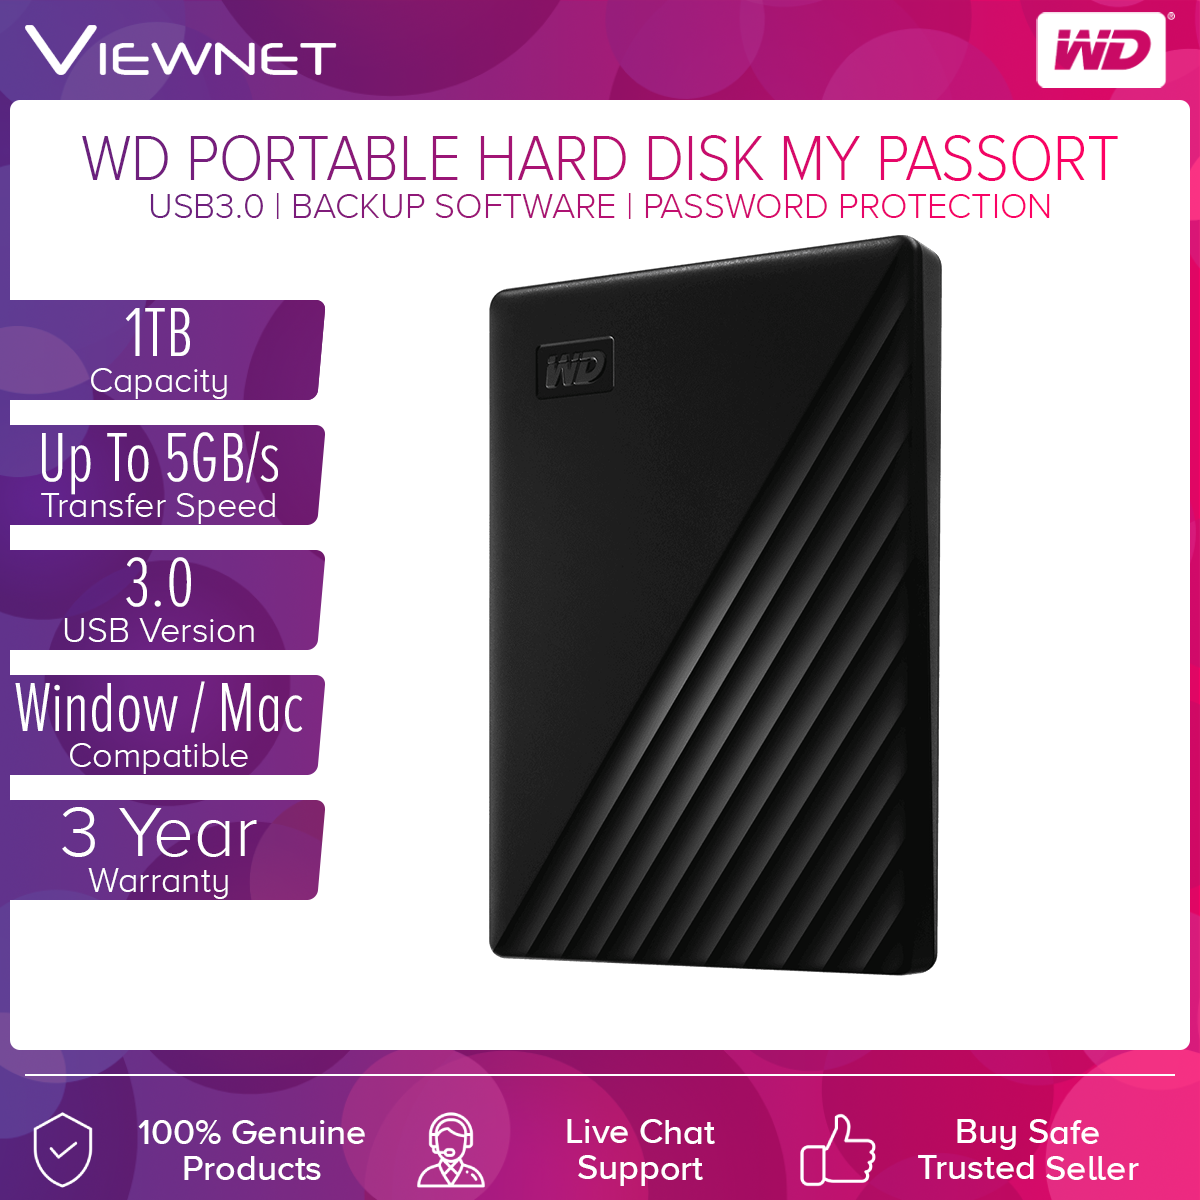 WD Western Digital My Passport 1TB Slim Portable External Hard Disk USB 3.0 With WD Backup Software & Password Protection